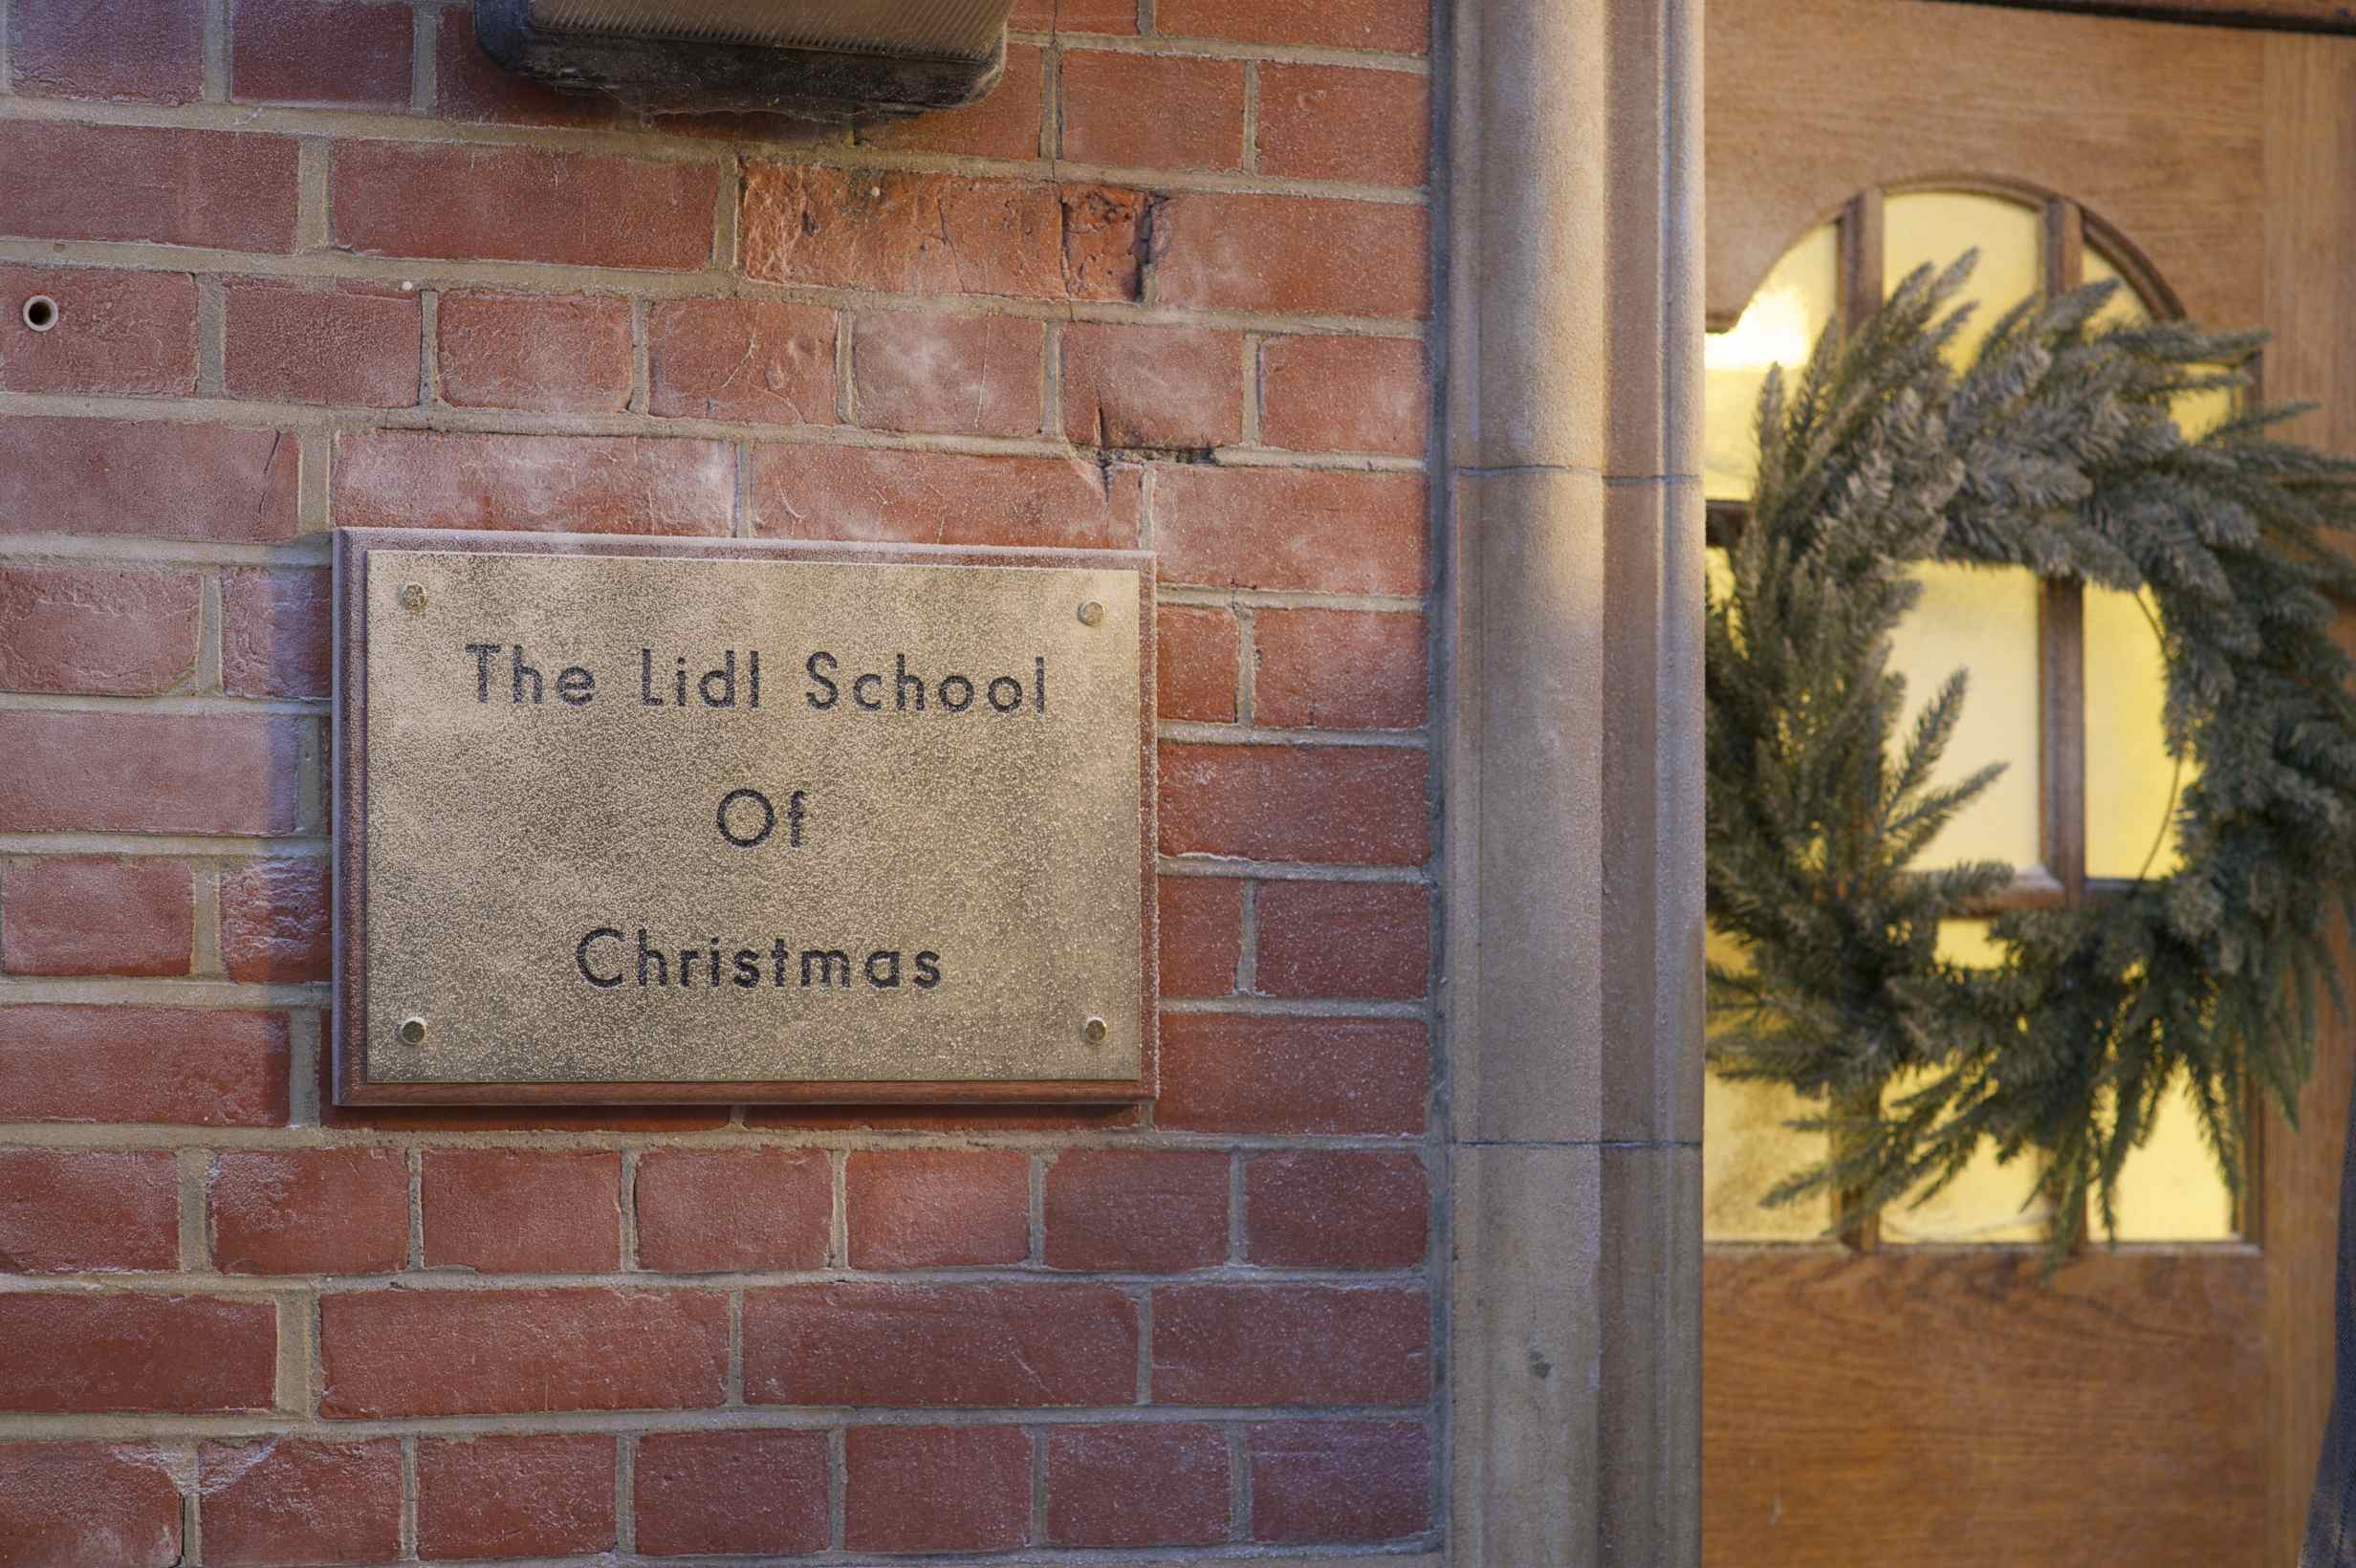 Lidl #SchoolOfChristmas 3